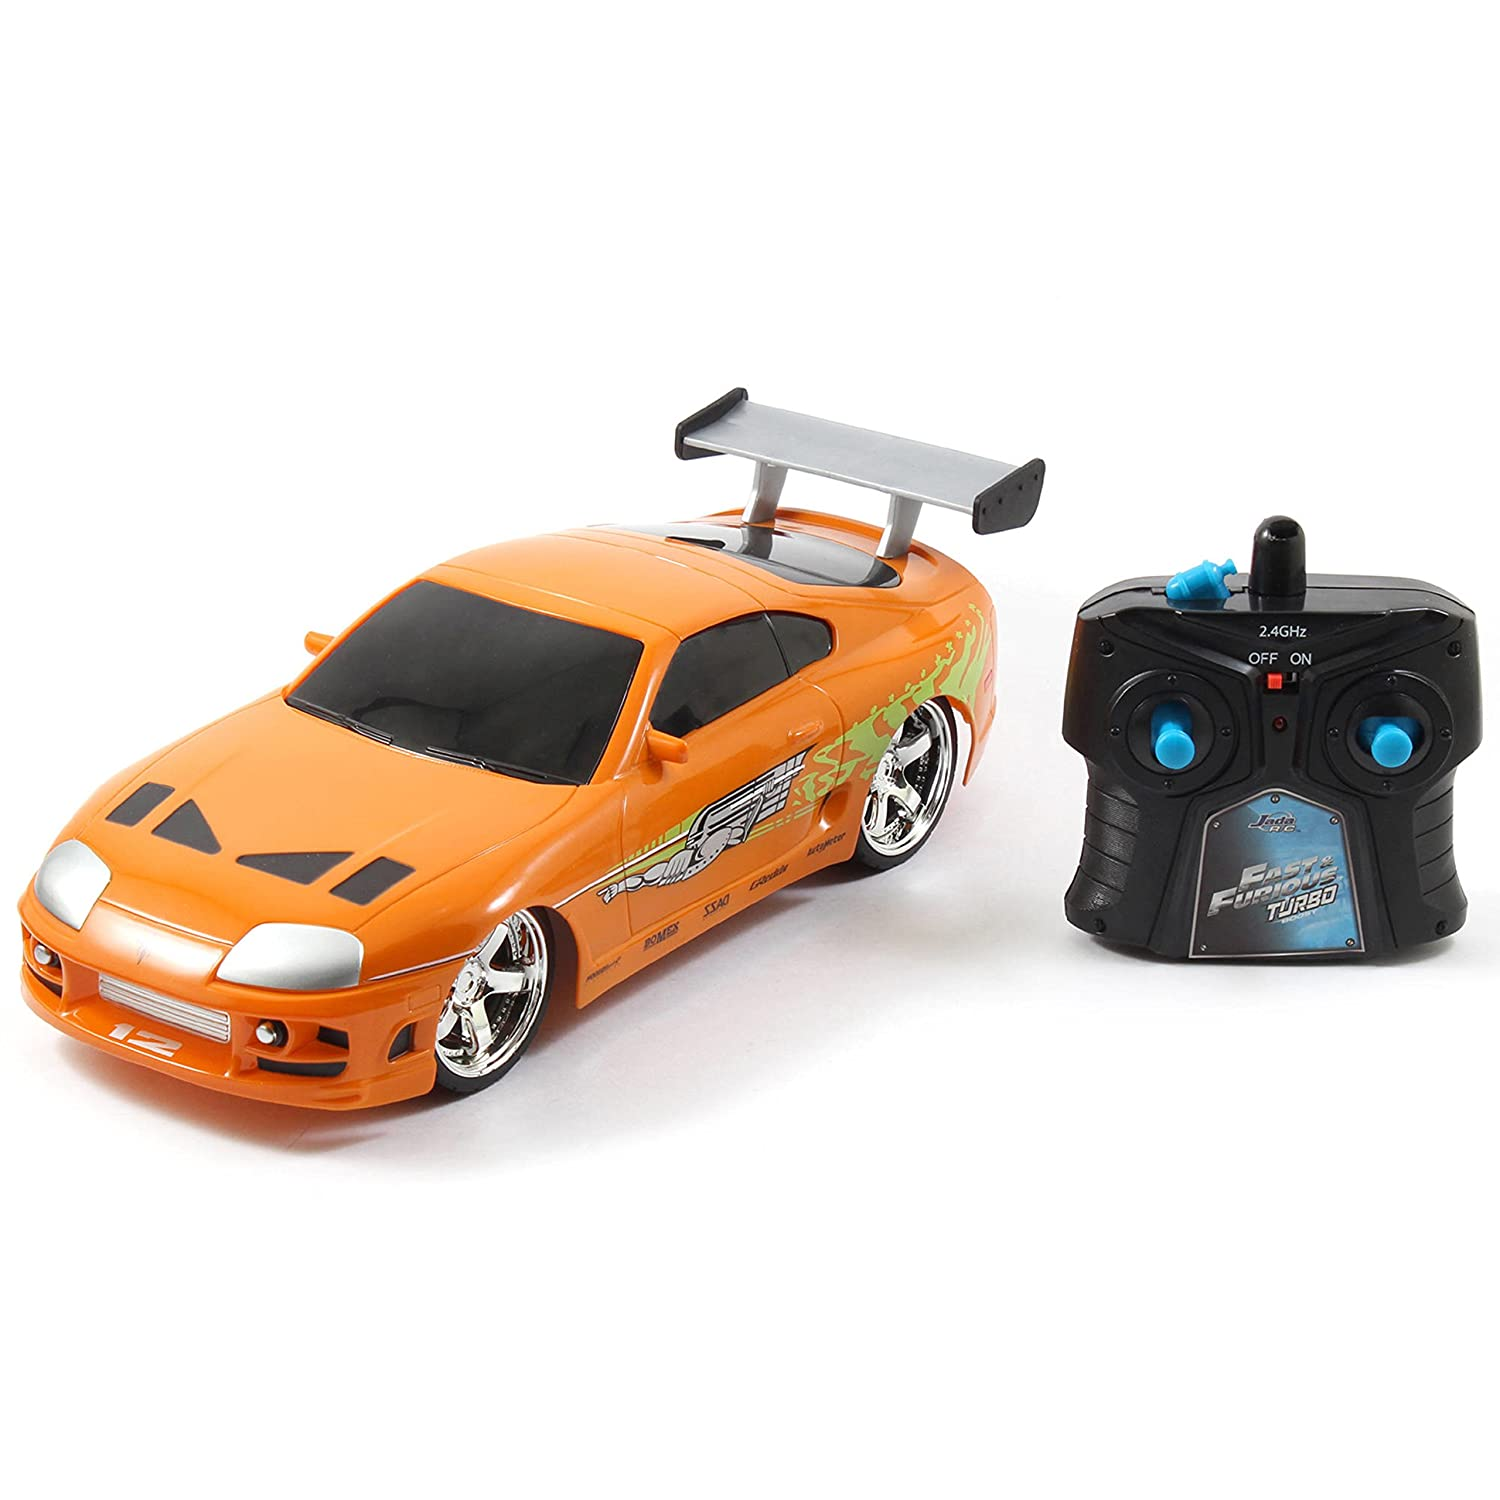 Amazon.com: Aero Modifications Fast and Furious 1:16 Remote Control Brians Toyota Supra Race Car: Toys & Games